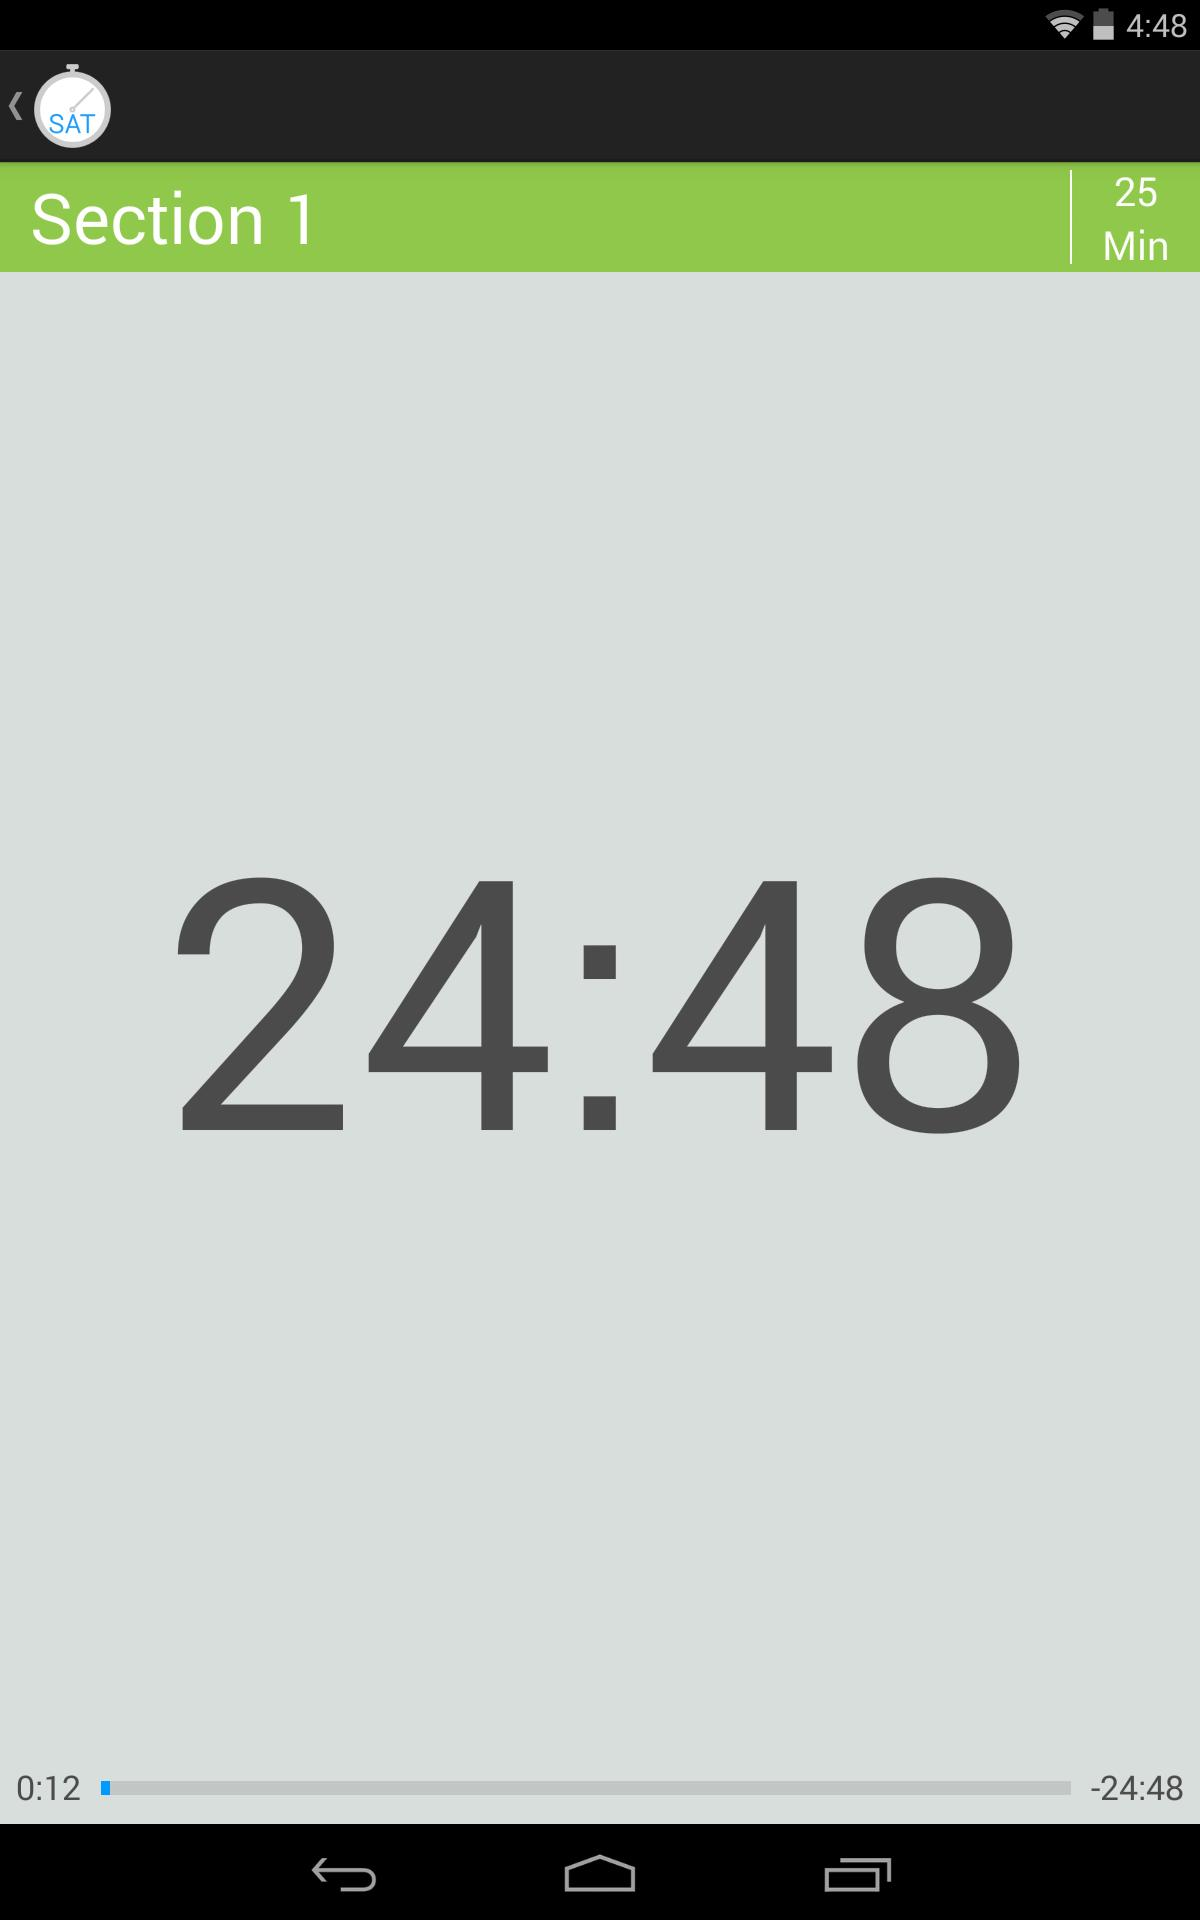 SAT Practice Test Timer for Android - APK Download